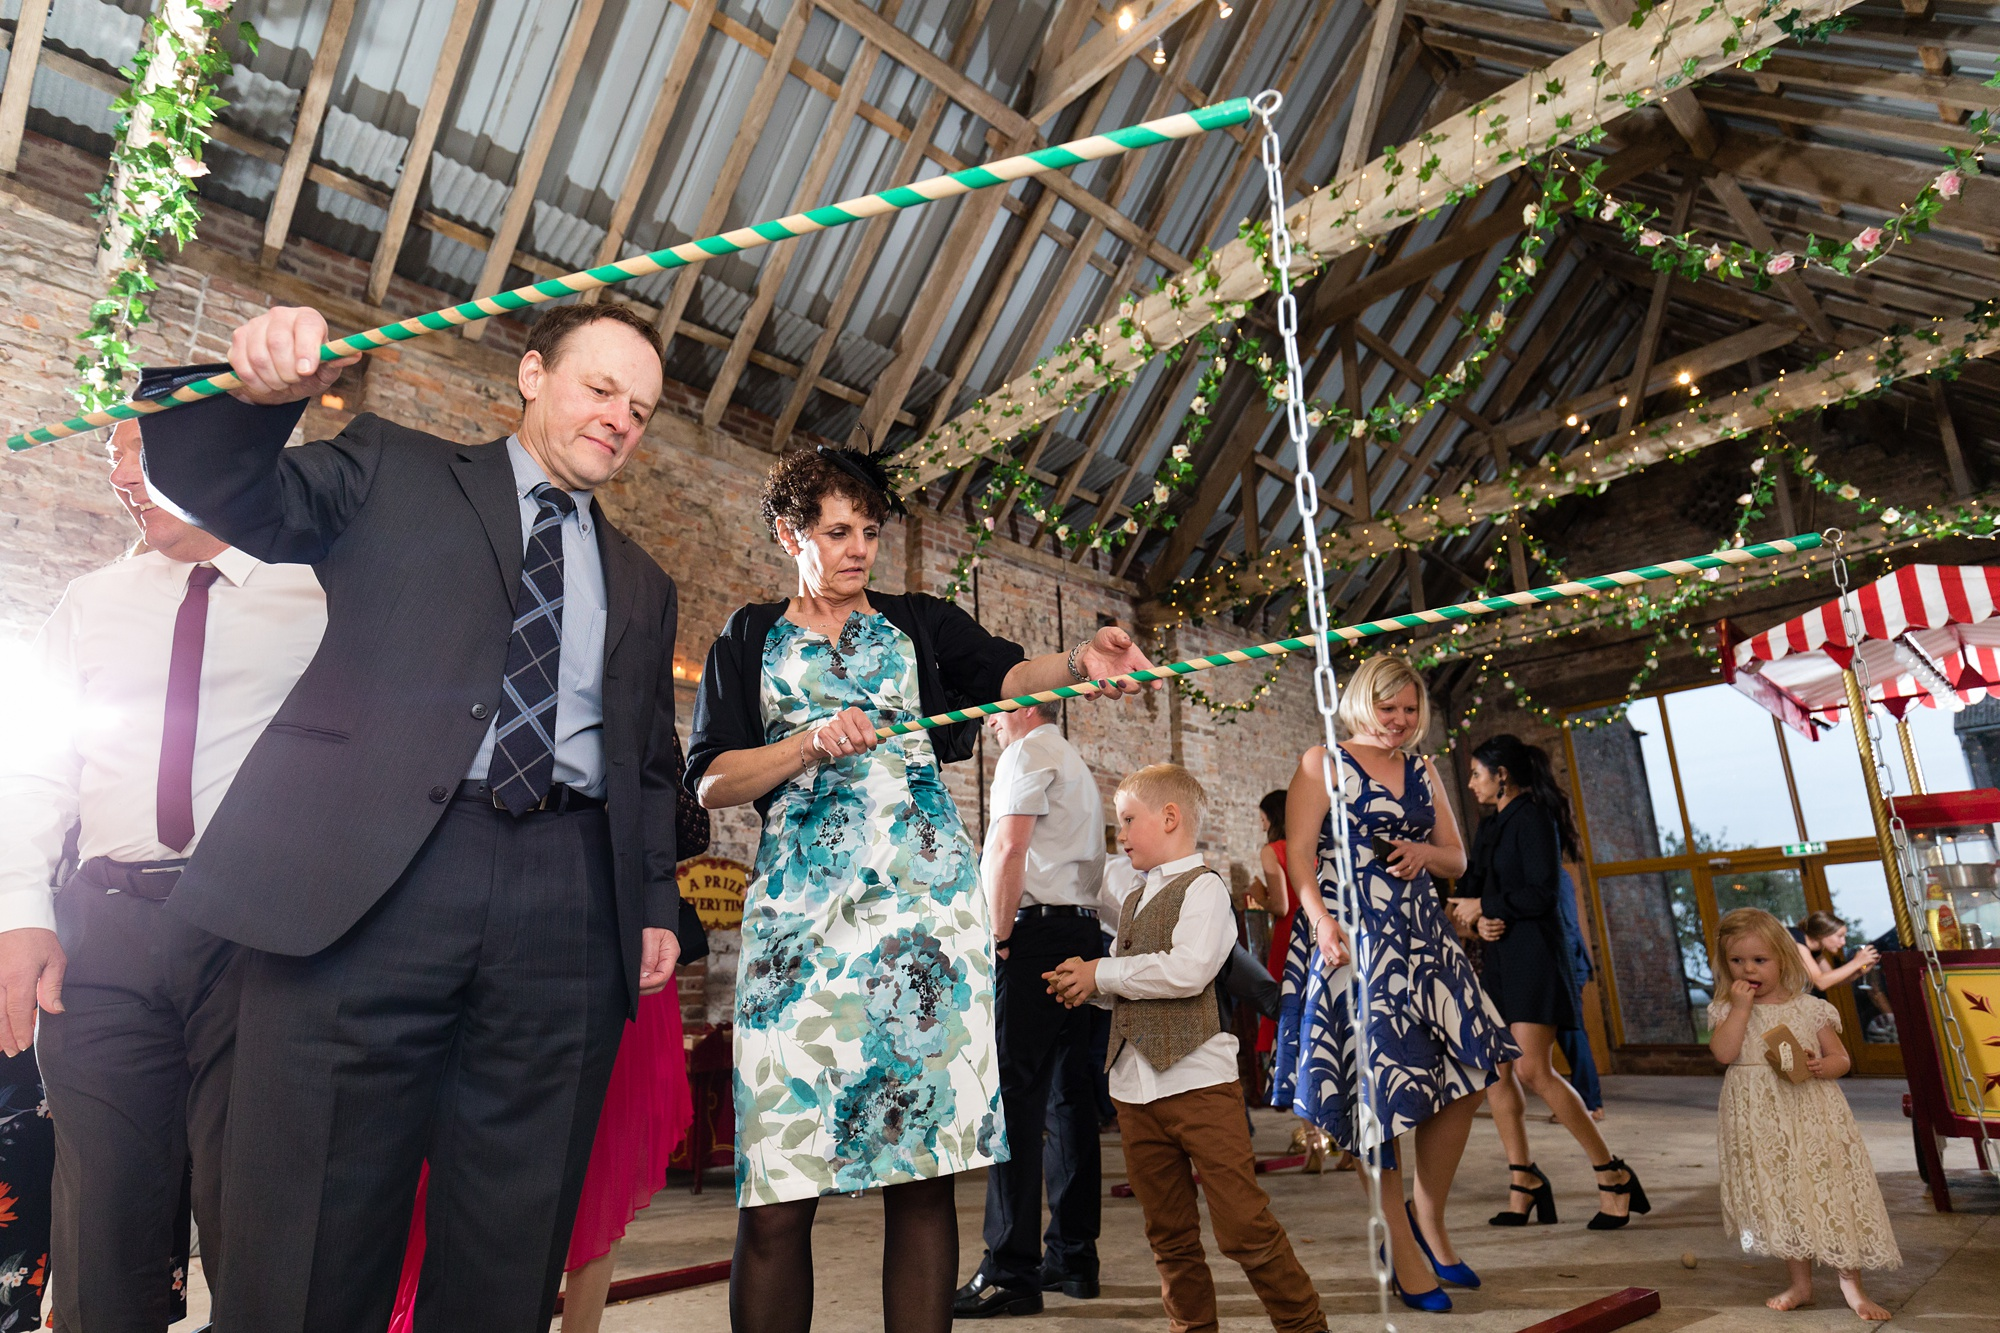 Yorkshire Wedding Photographers guests attending an indoor fun fayre